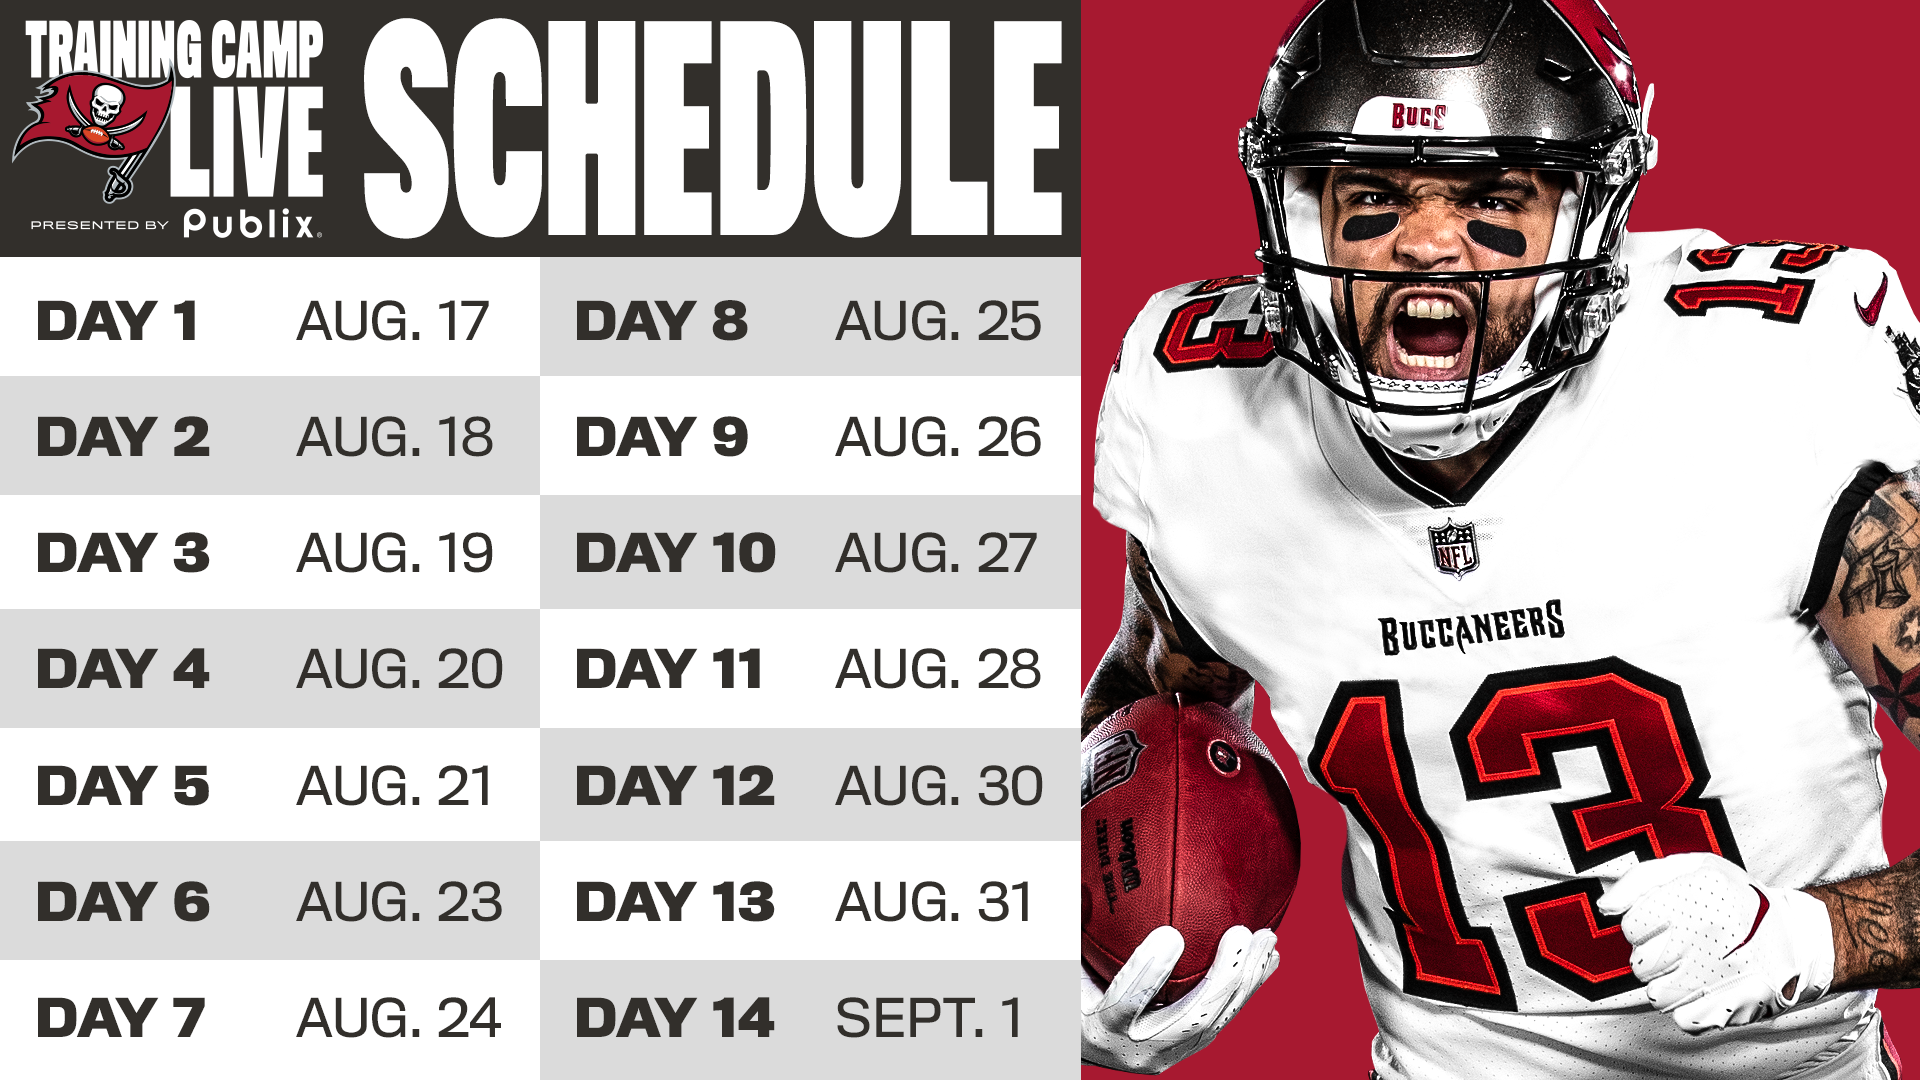 Training Camp Live Schedule: 8/17 8/18 8/20 8/21 8/23 8/24 8/25 8/27 8/28 8/30 8/31 9/2 9/3 9/4